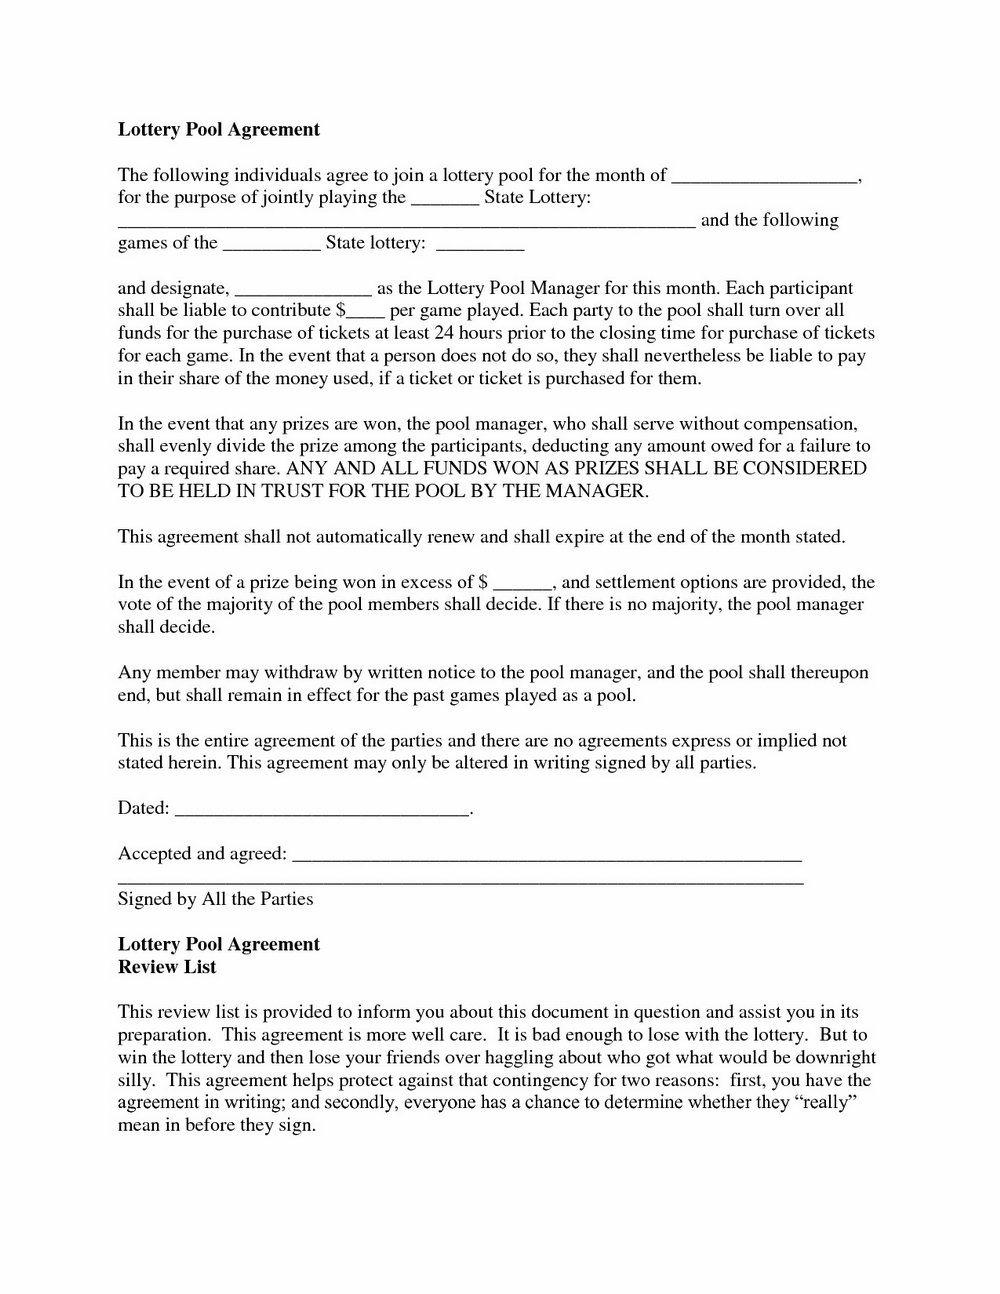 Lottery Pool Contract Template